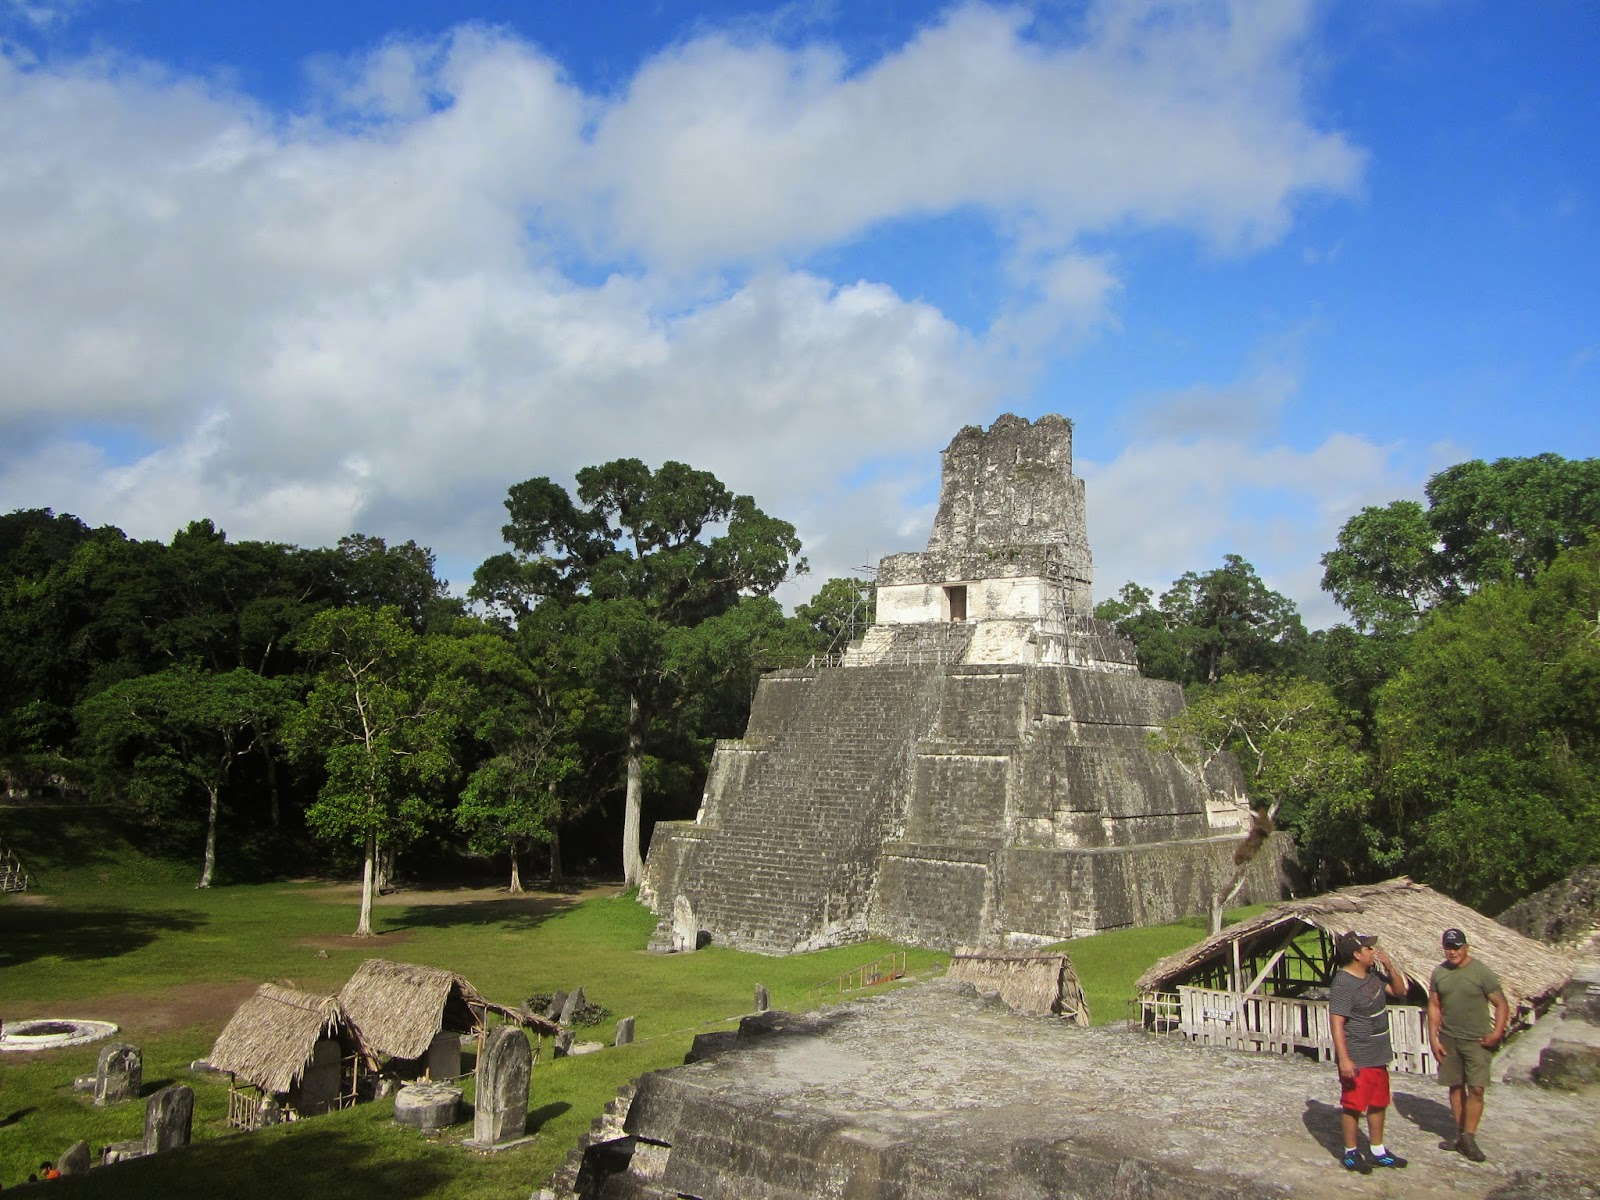 Temple at Tikal in Guatemala